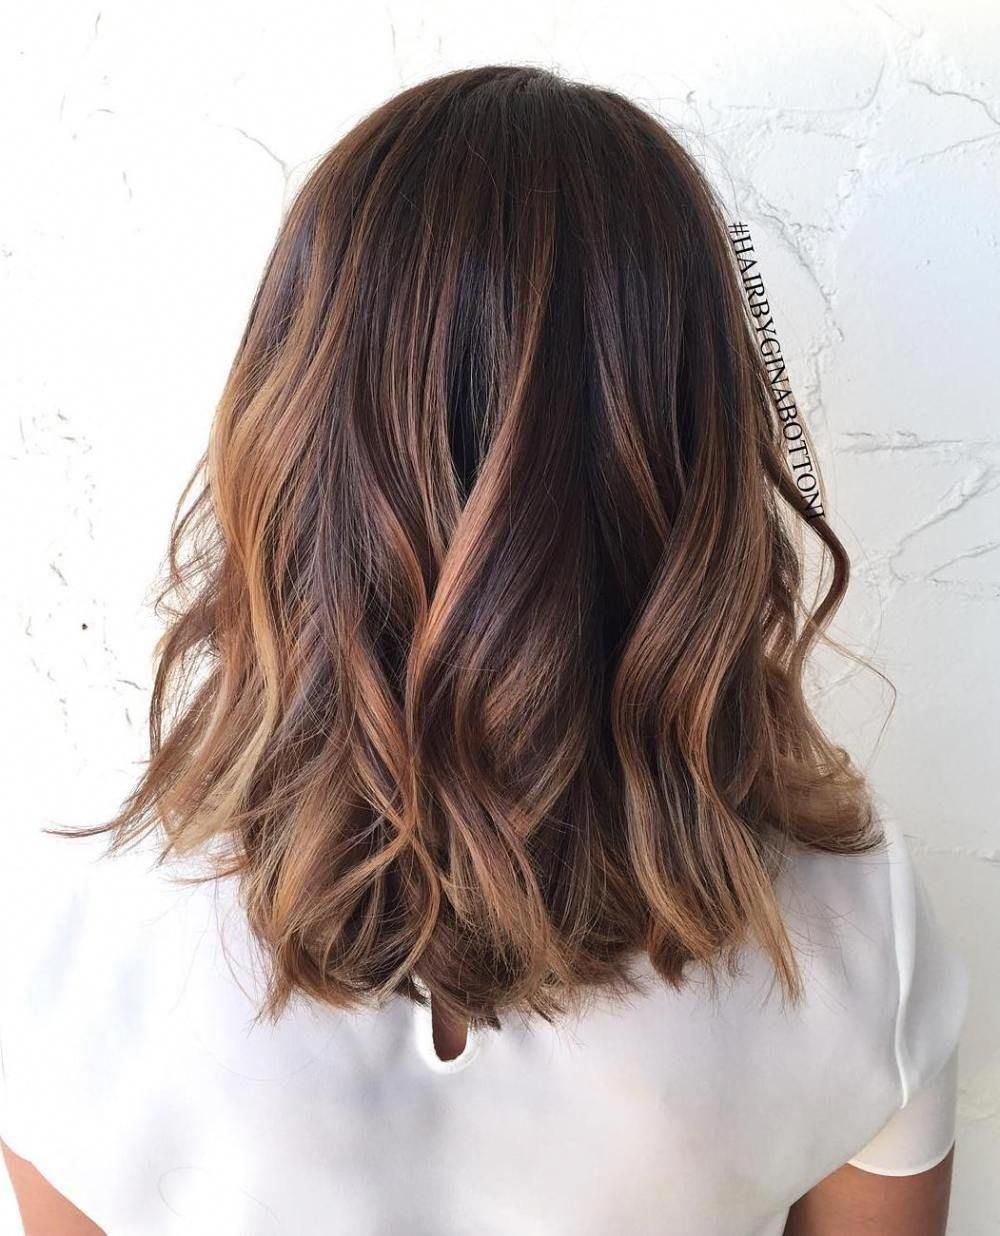 60 Chocolate Brown Hair Color Ideas for Brunettes #40: Cropped Chocolate Brown Hair For a gorgeous take on the balayage trend that doesn\u2019t feel too prissy, go for a cute choppy bob. Add some randomly placed honey highlights to update your natural dark hair color. This cut is girly and tons of fun. Imperfect curls only add to the allure. #brownhaircolors